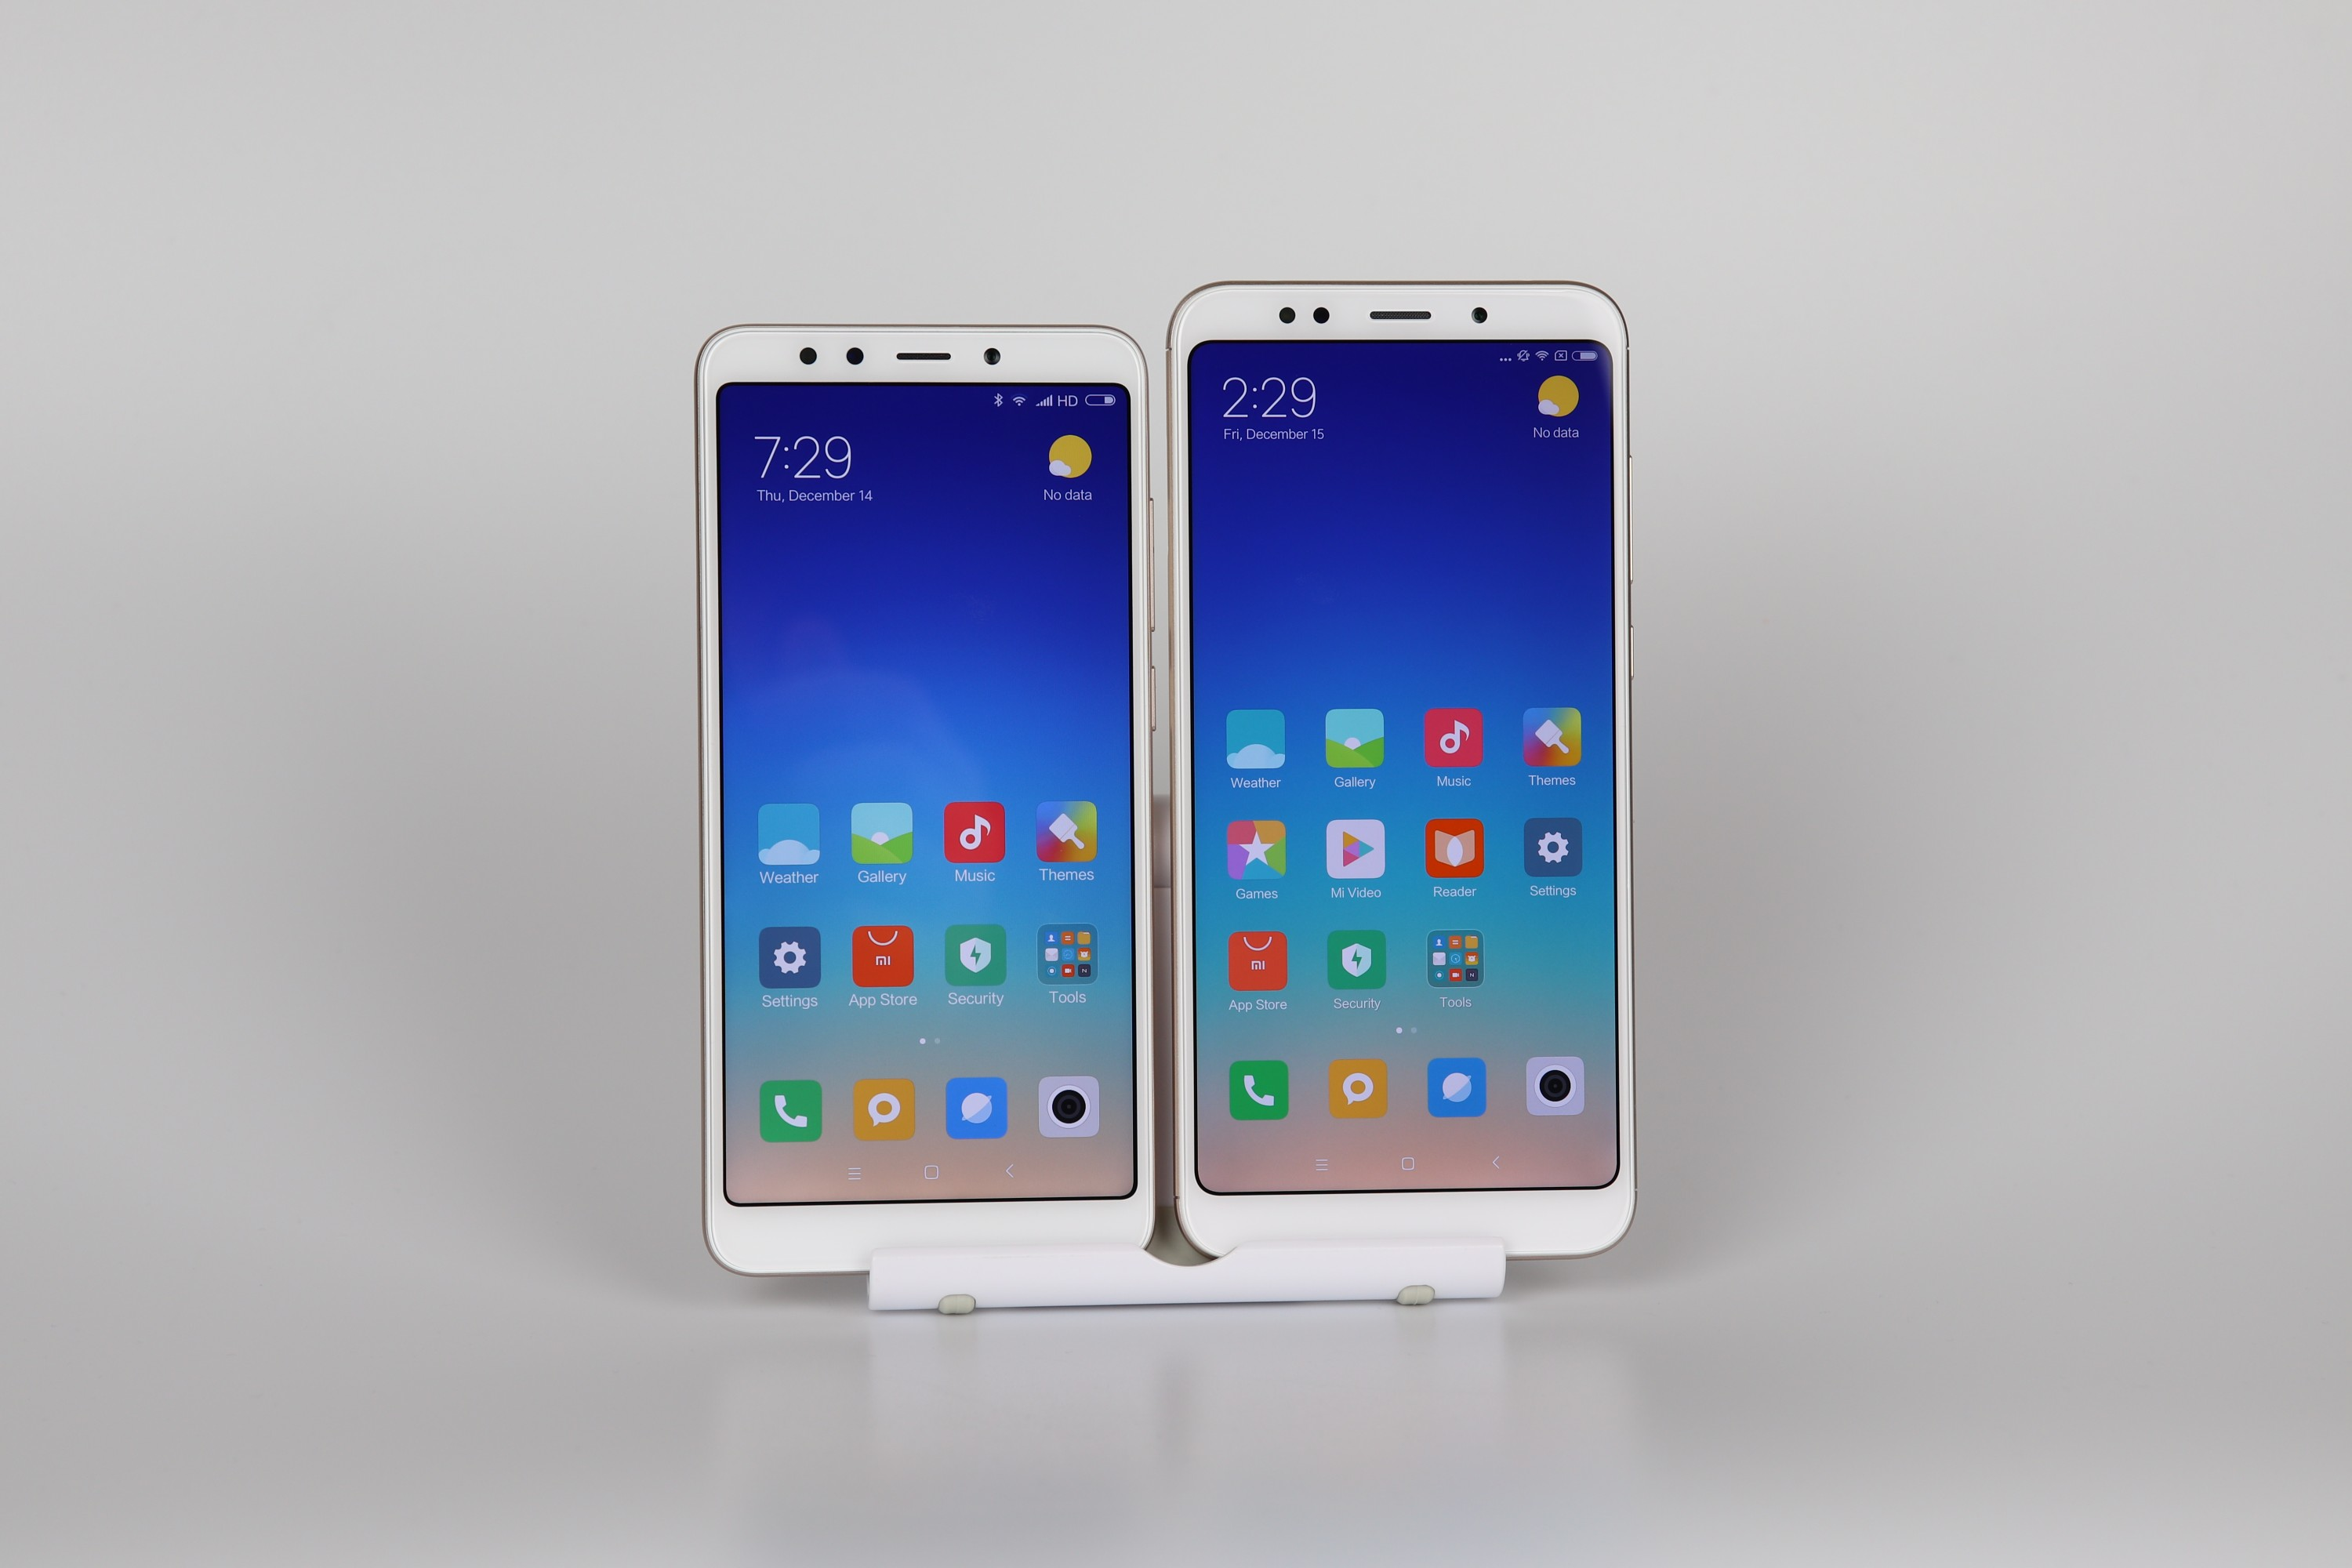 Xiaomi Redmi 5 Plus Display Vergleich 1